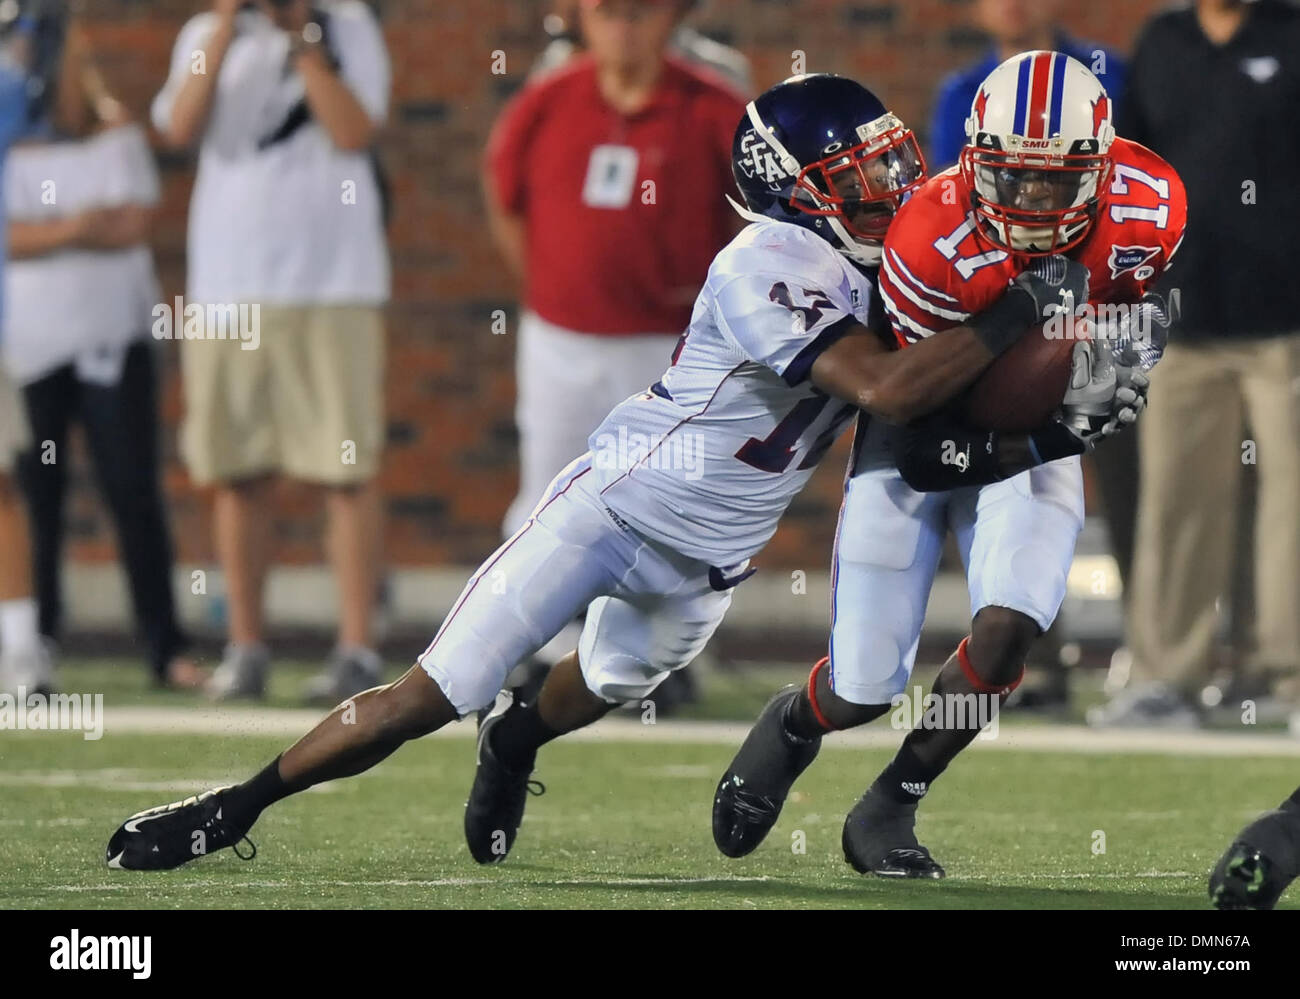 05 SEP 2009:  Stephen F Austin travels to Dallas to face the SMU Ponies in the season kickoff.  With a 4th quarter come back the Ponies win 31-23 over SFA.  Senior SMU WR Emmanuel Sanders gets tackled by DB Michael Williams. (Credit Image: © Southcreek Global/ZUMApress.com) - Stock Image